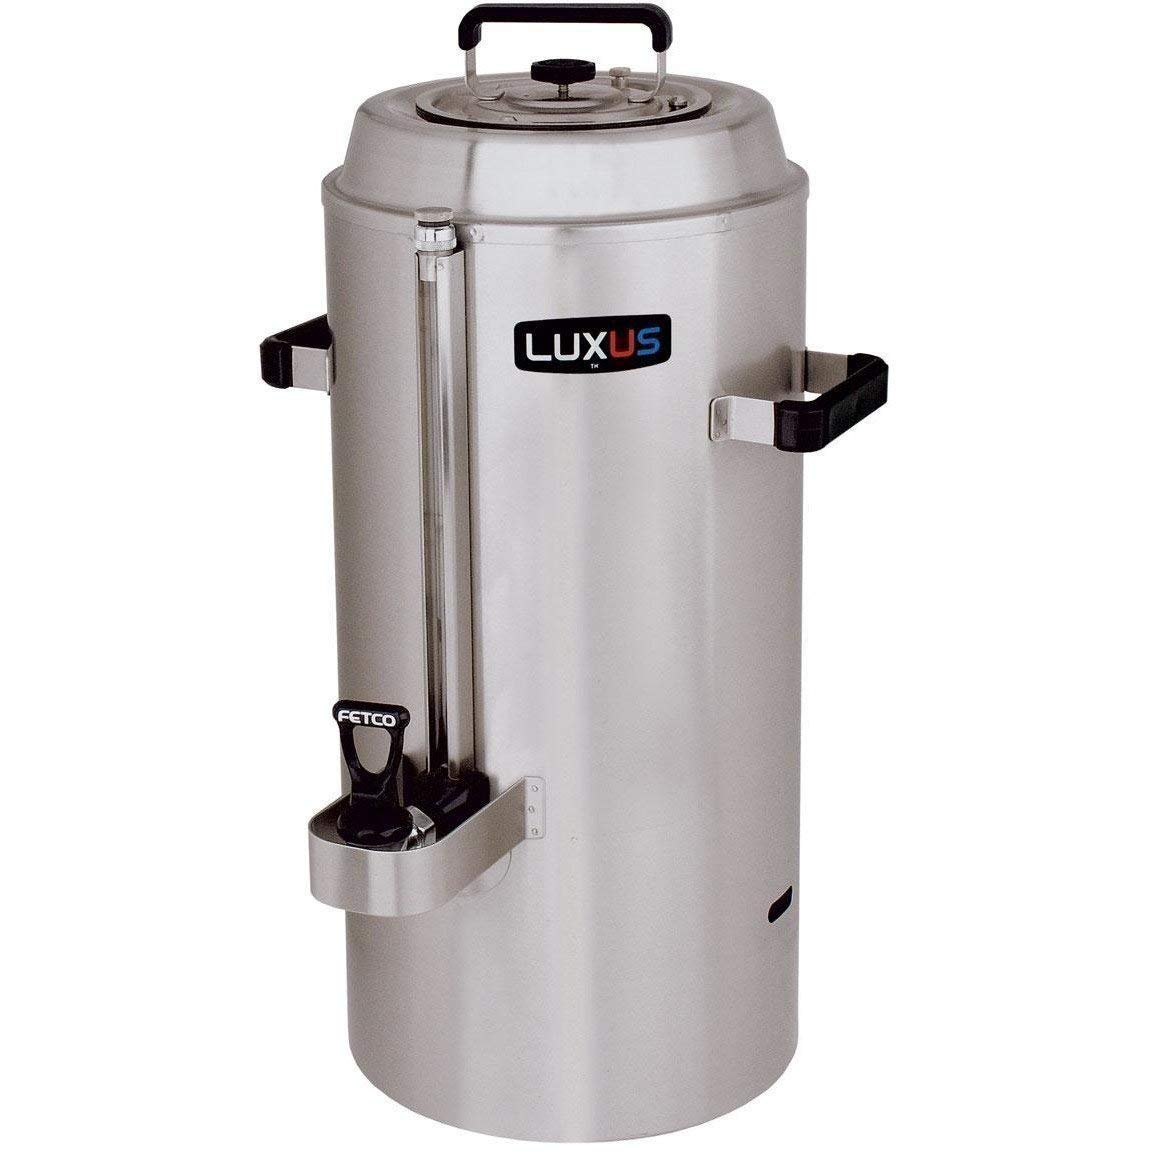 Fetco 3.0 Gallon LUXUS Thermal Dispenser Coffee Server TPD-30 D01200000